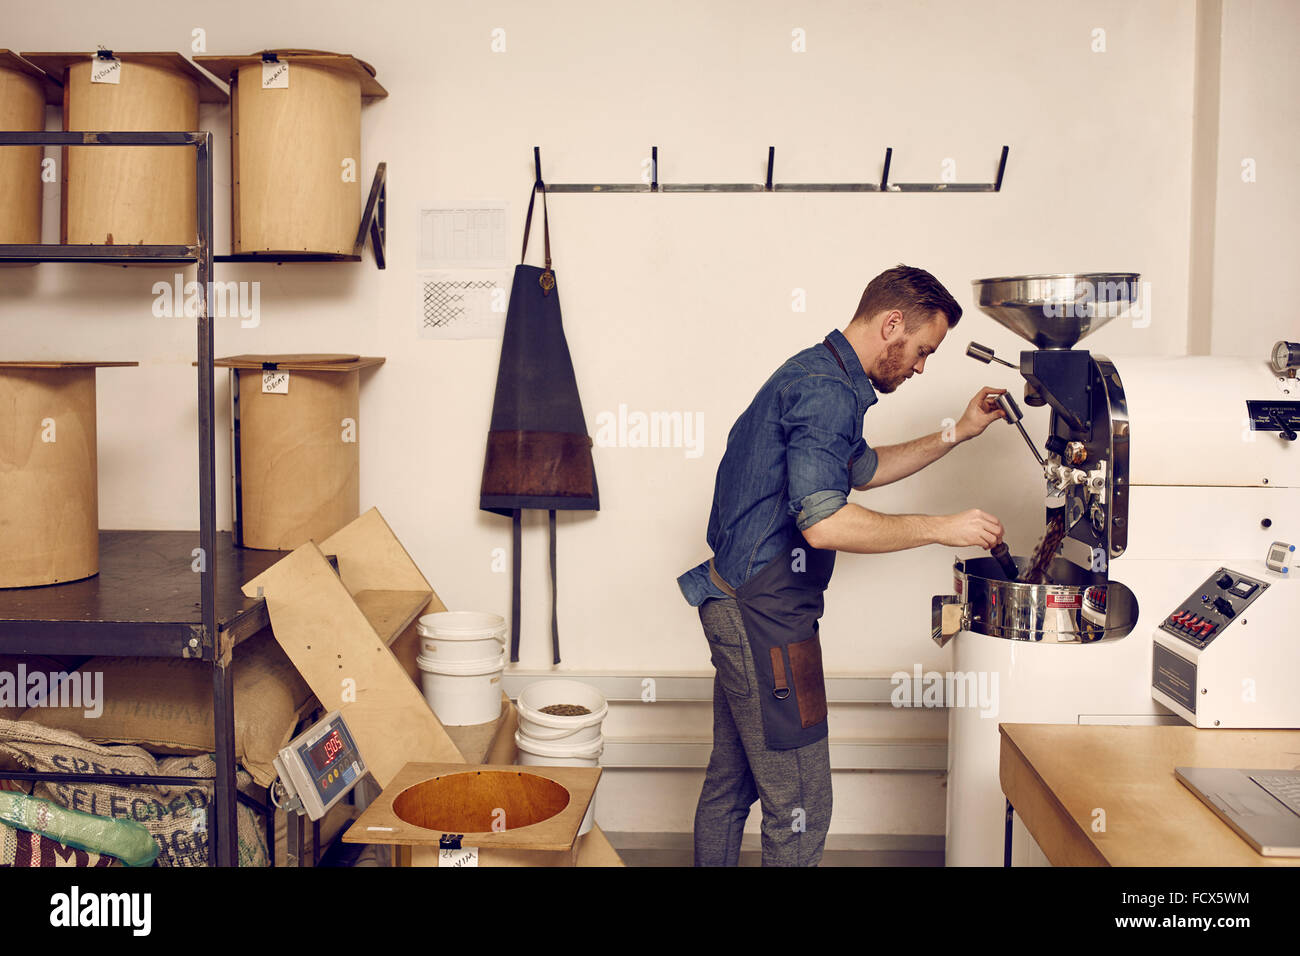 Business owner operating a modern coffee bean roasting machine - Stock Image